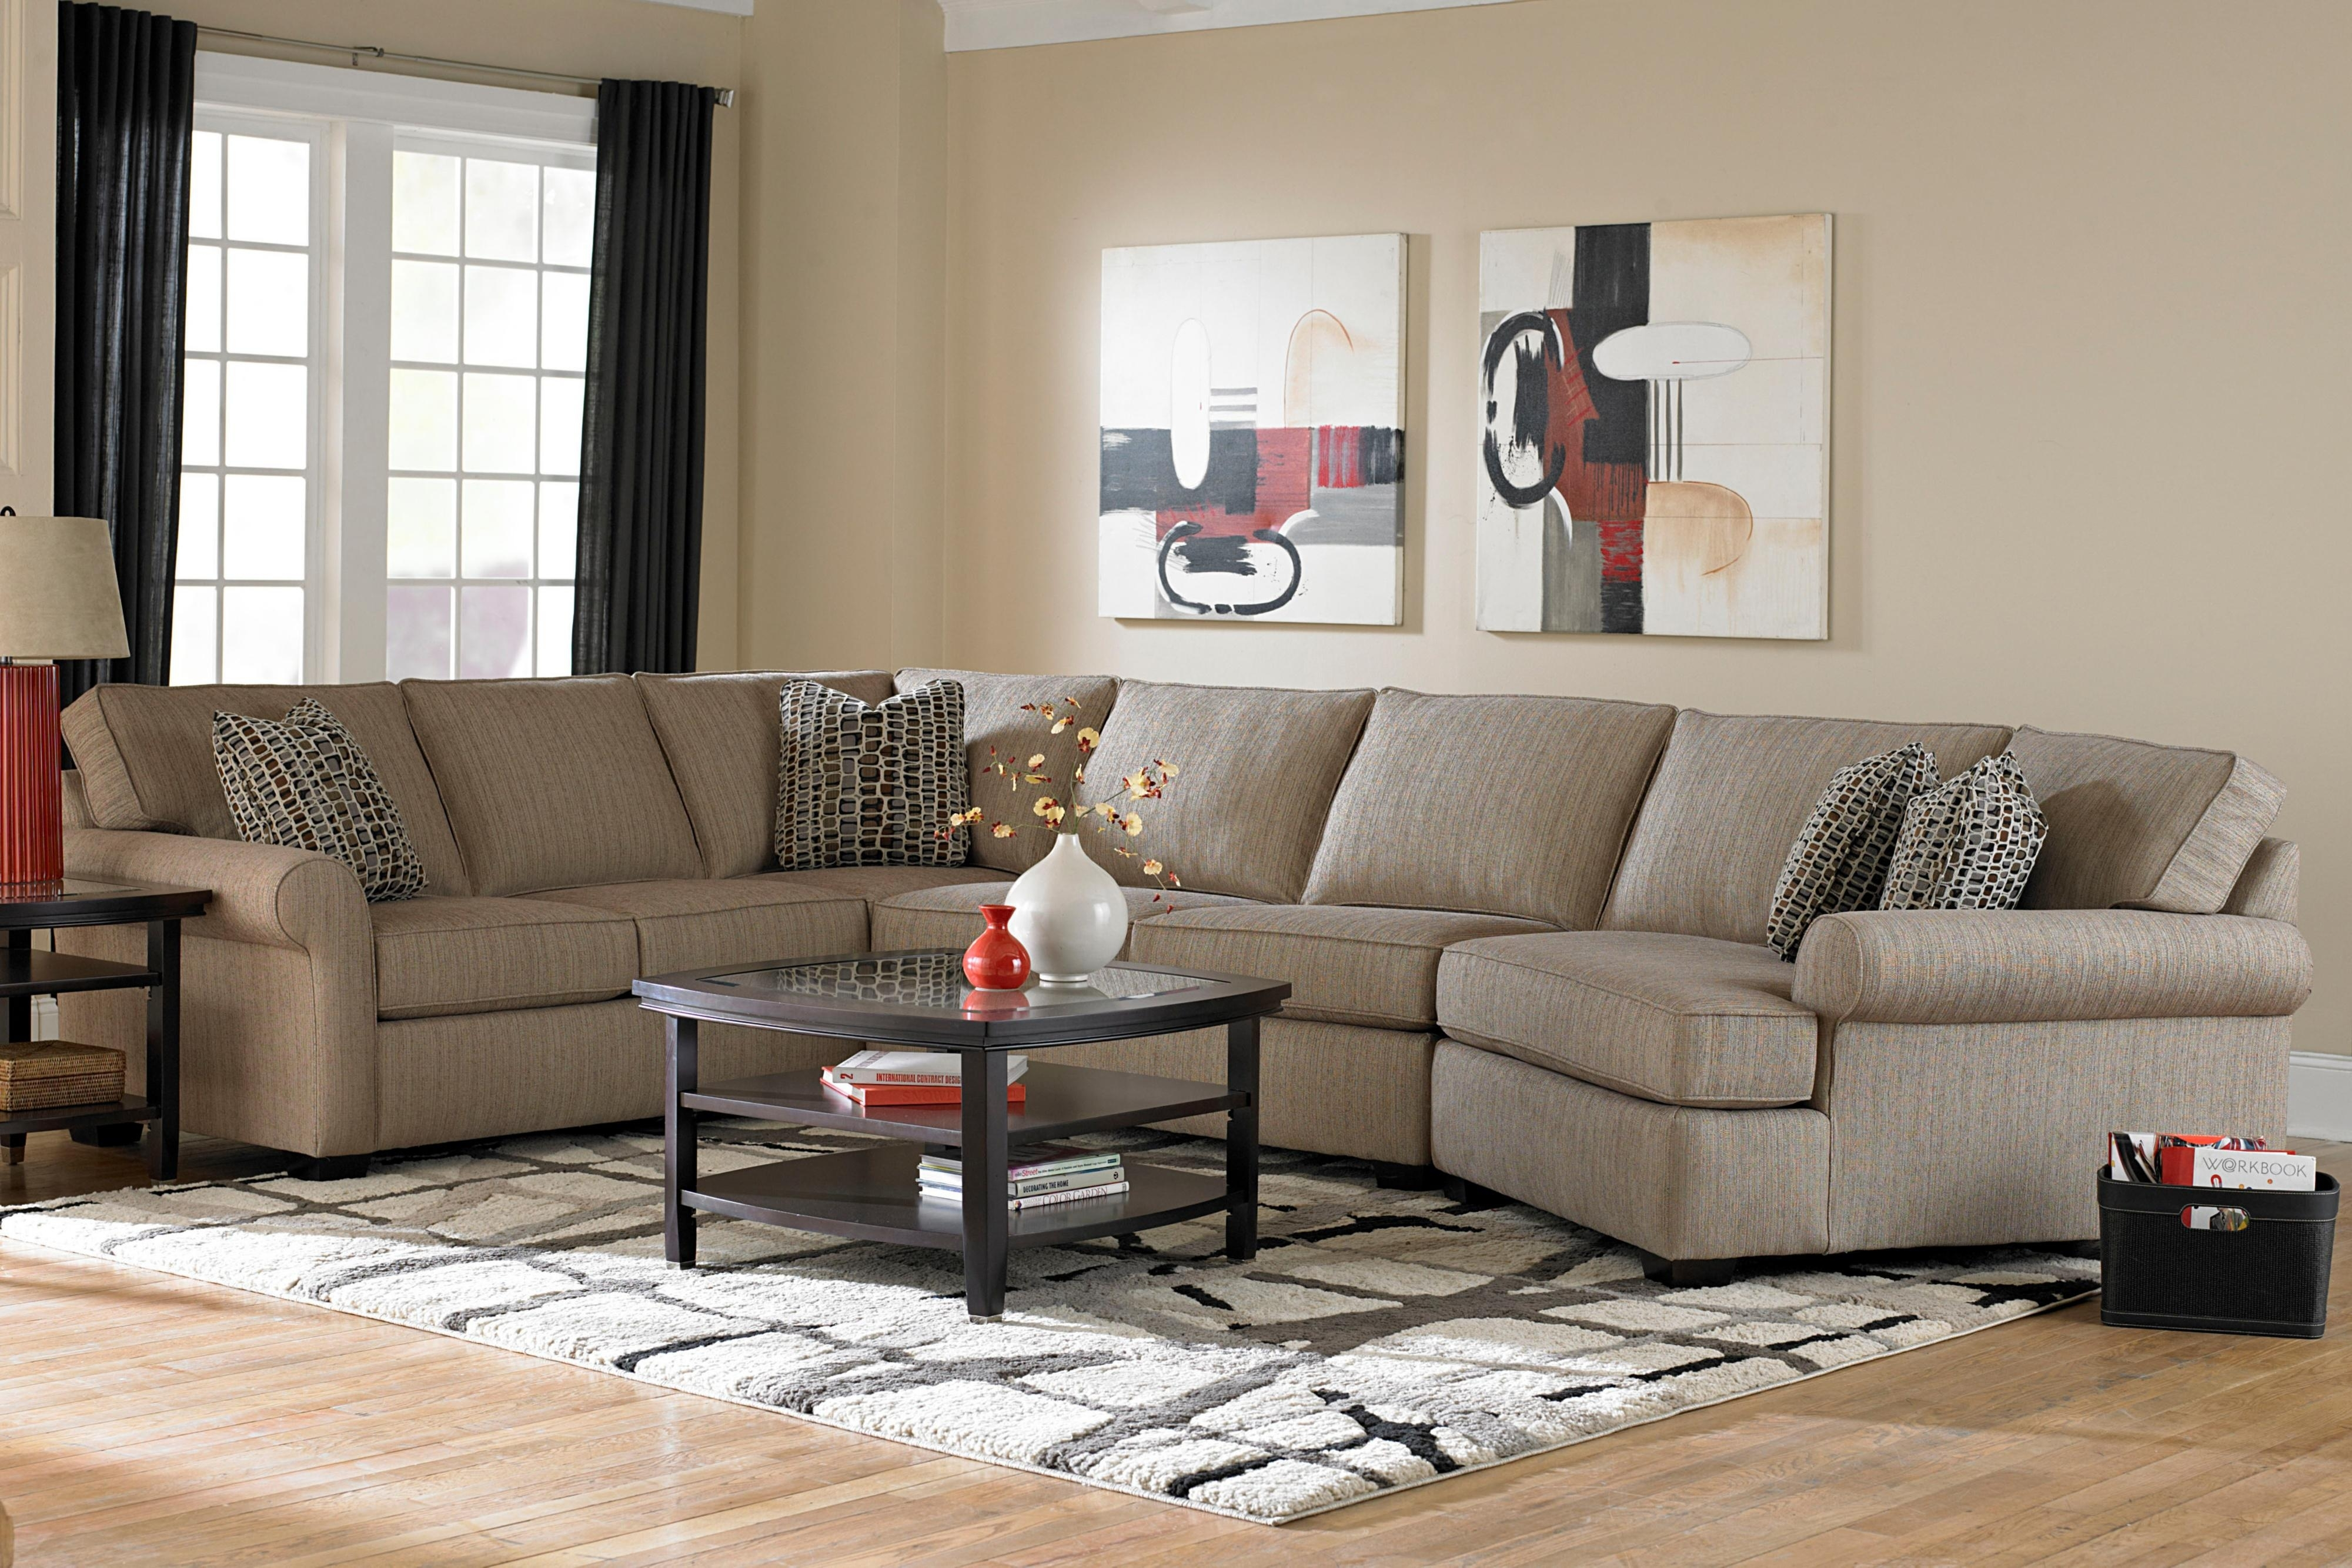 Broyhill Furniture Ethan Transitional Sectional Sofa With Right Within Sectional Sofas In Greenville Sc (View 9 of 10)